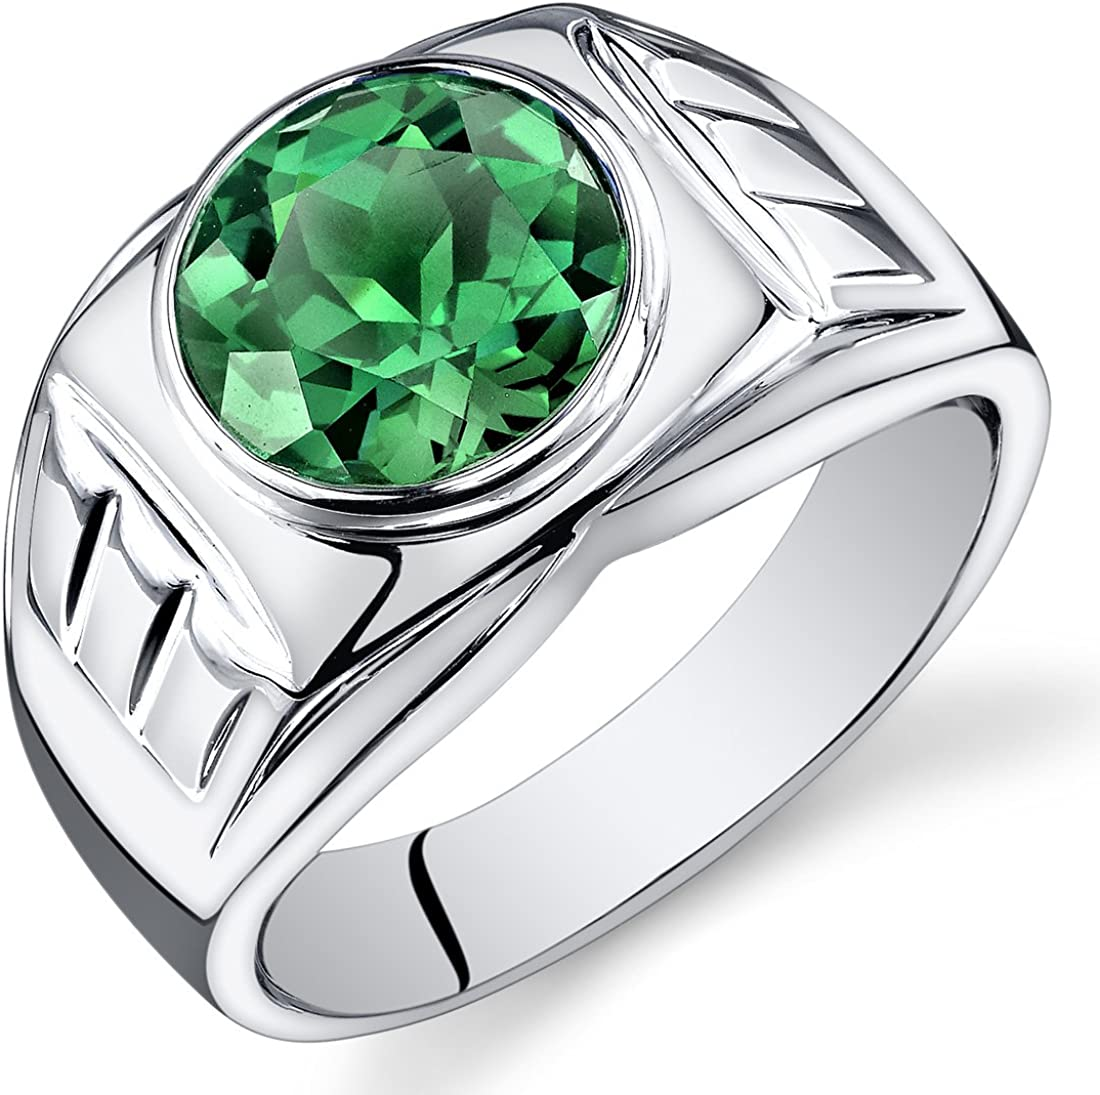 Mens 4.50 Carats Simulated Emerald Ring Sterling Silver Sizes 8 To 13